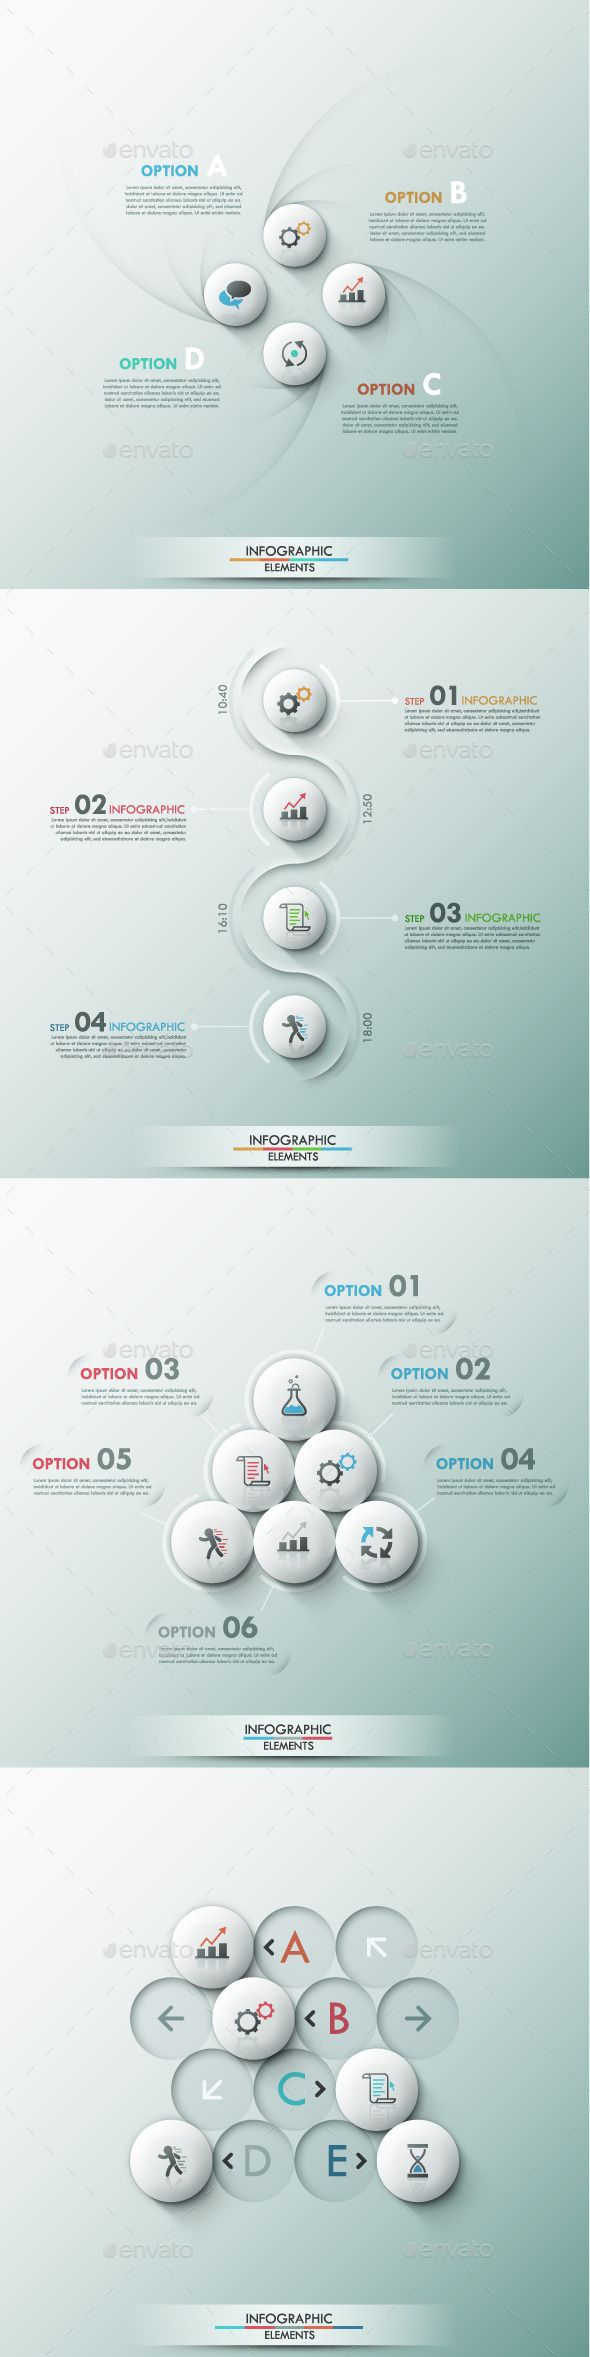 Set of 4 Modern Infographic Template #design Download: http://graphicriver.net/item/set-of-4-modern-infographic-templates/9449510?ref=ksioks